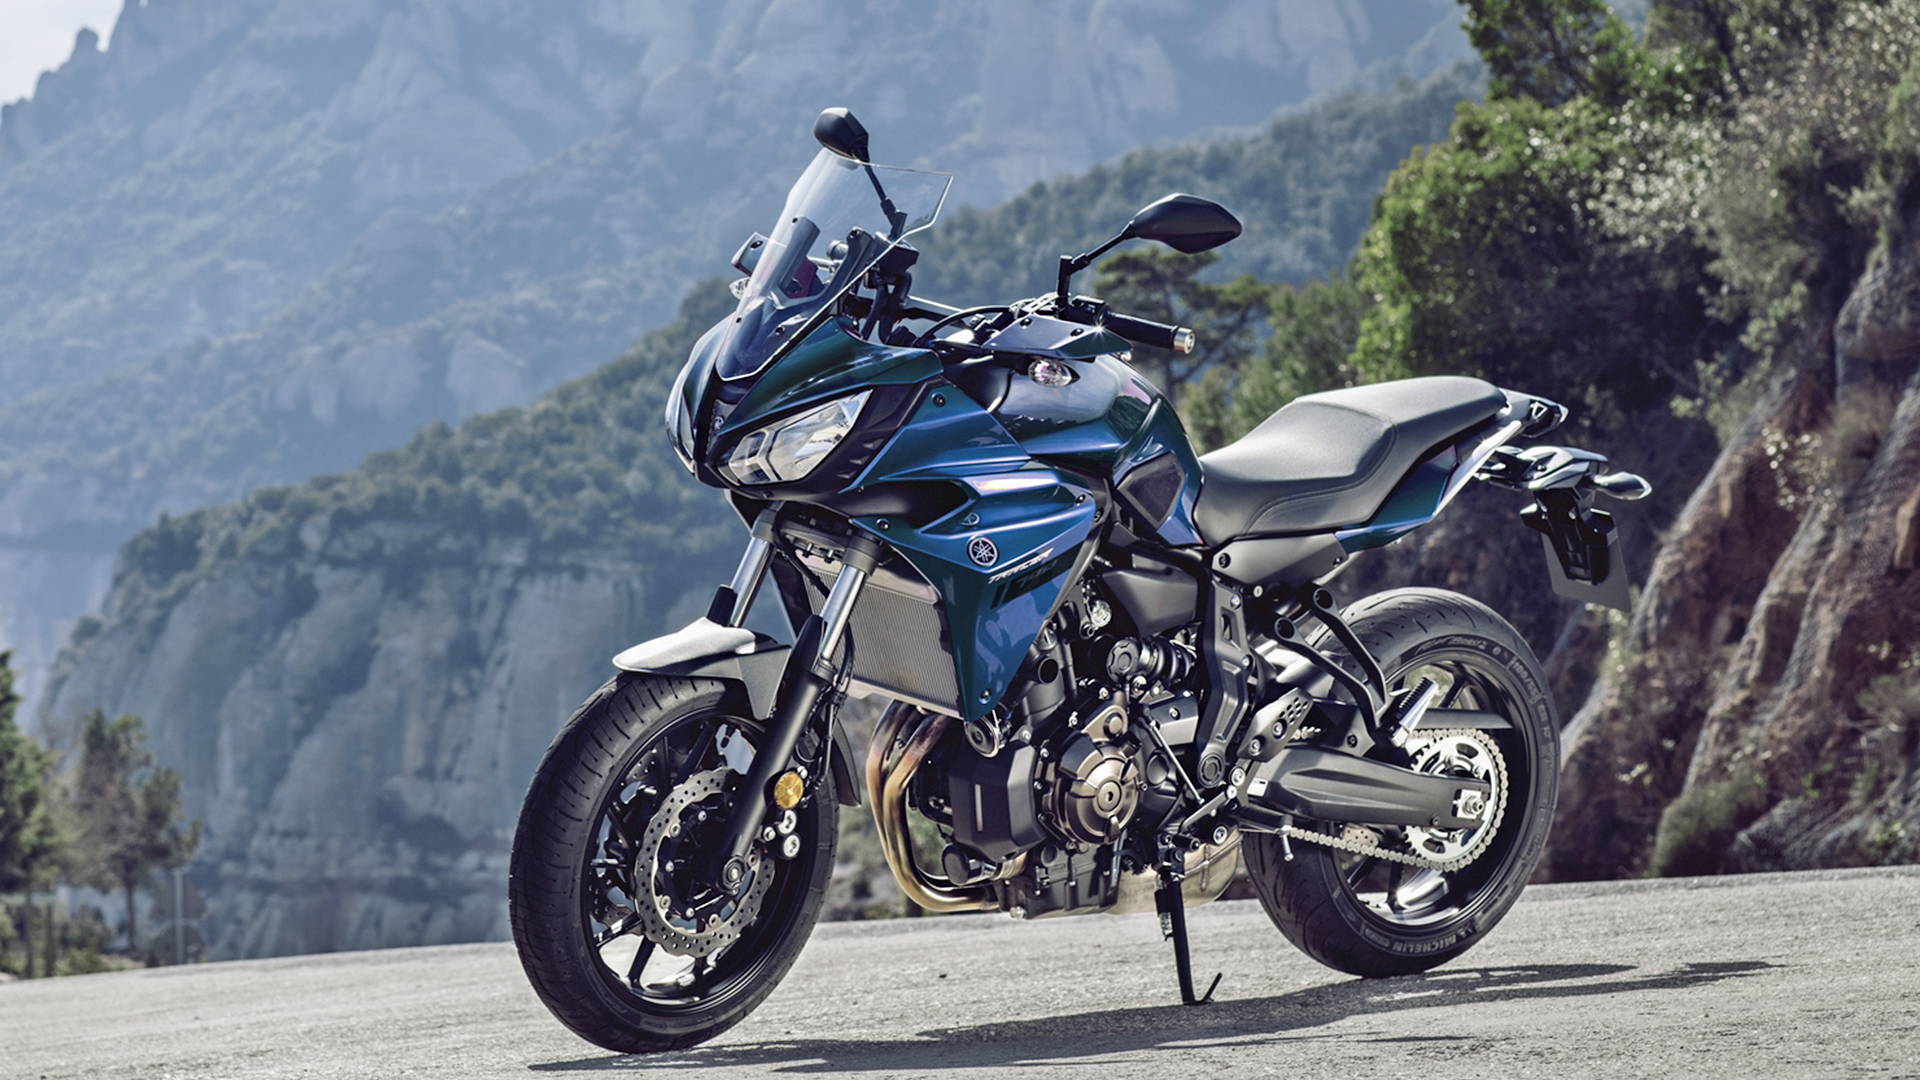 Top 10 Mountain Motorcycle For Best Ride to Off-Road